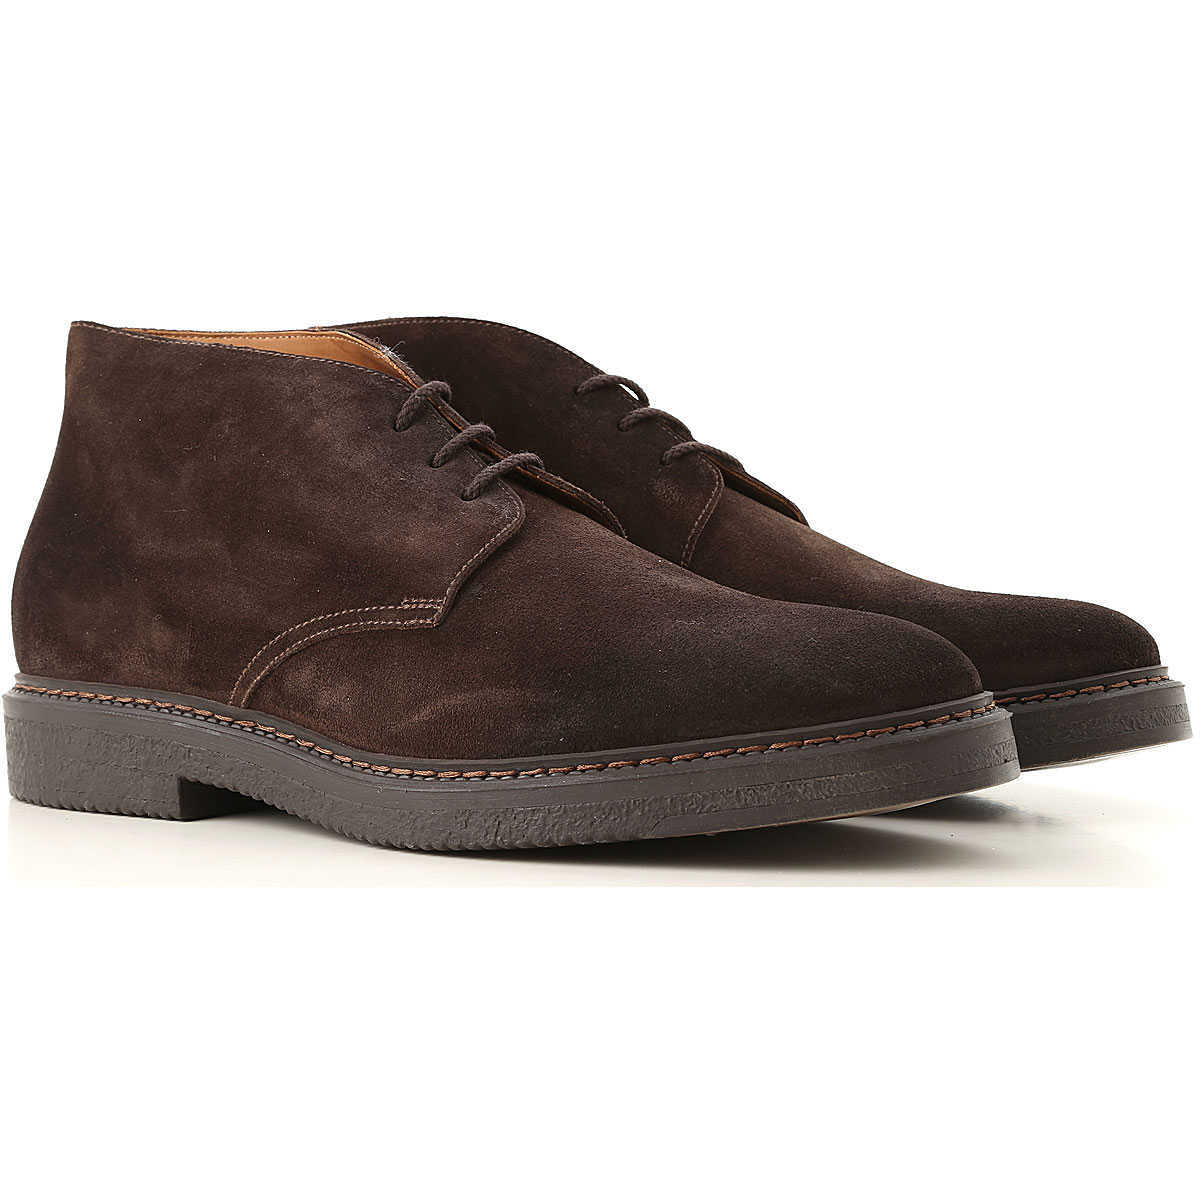 Doucals Lace Up Shoes for Men Oxfords 7 9 Derbies and Brogues On Sale UK - GOOFASH